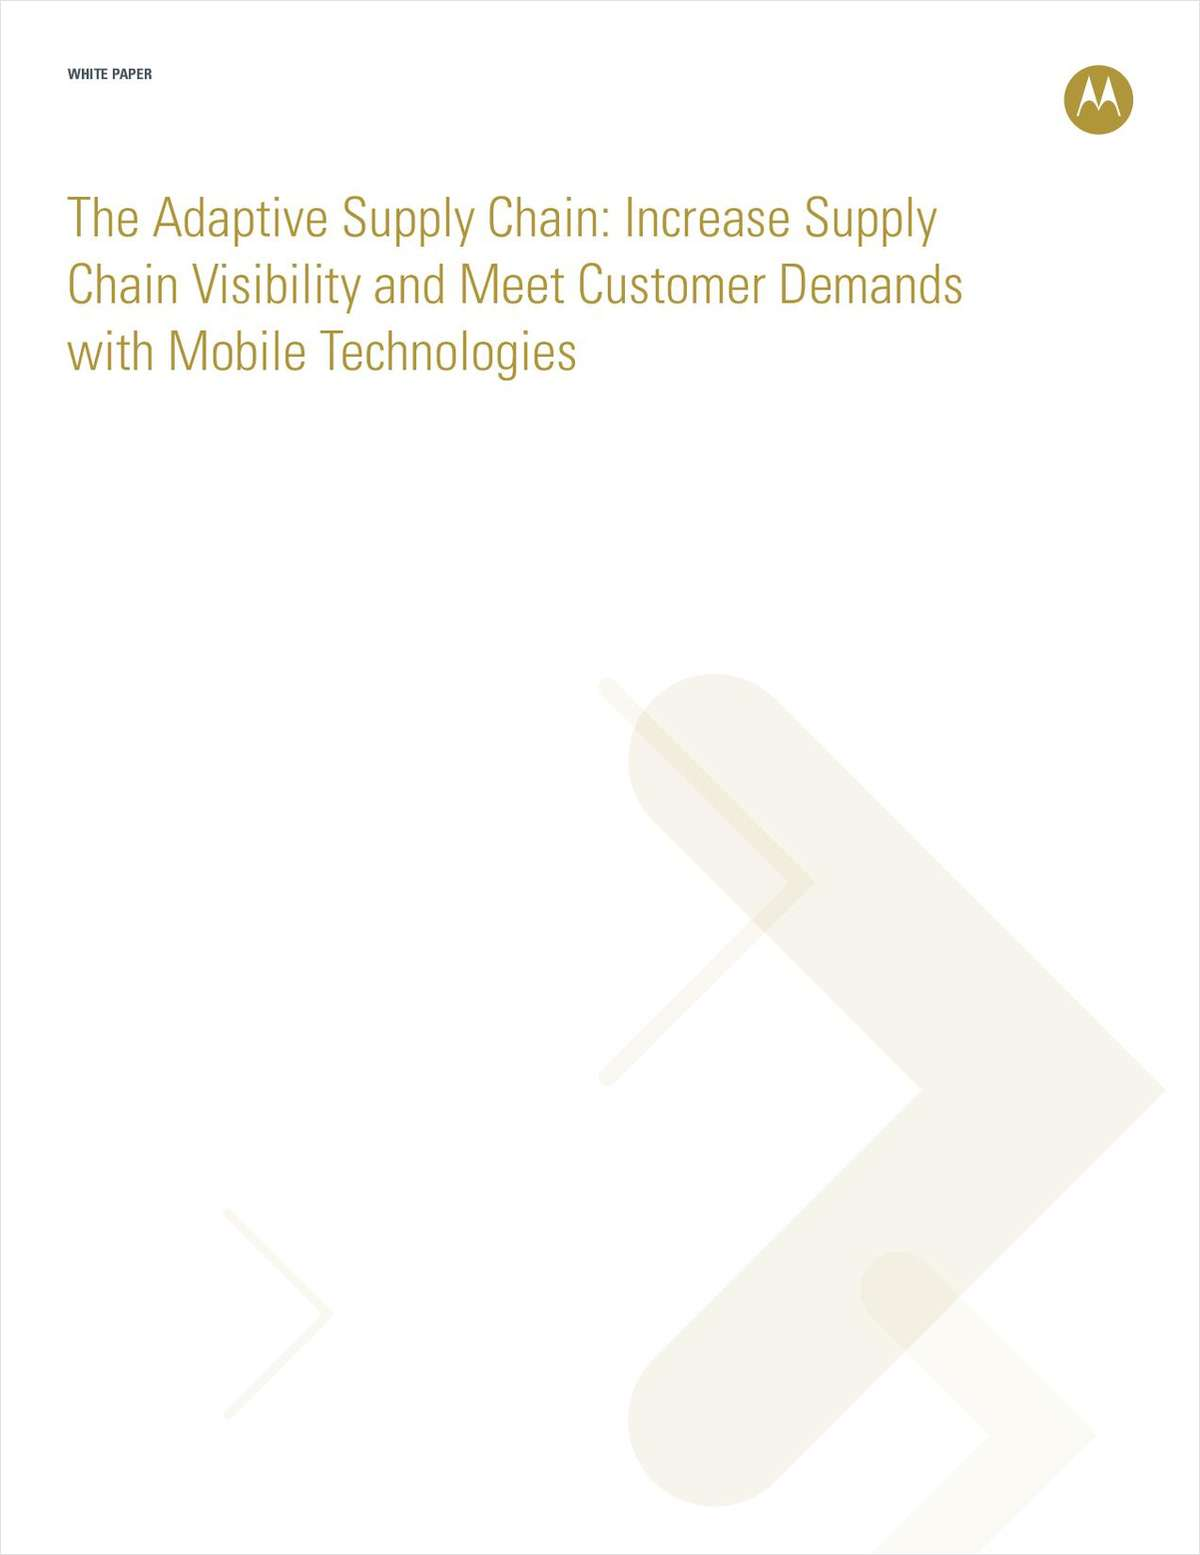 The Adaptive Supply Chain: Increase Supply Chain Visibility and Meet Customer Demands